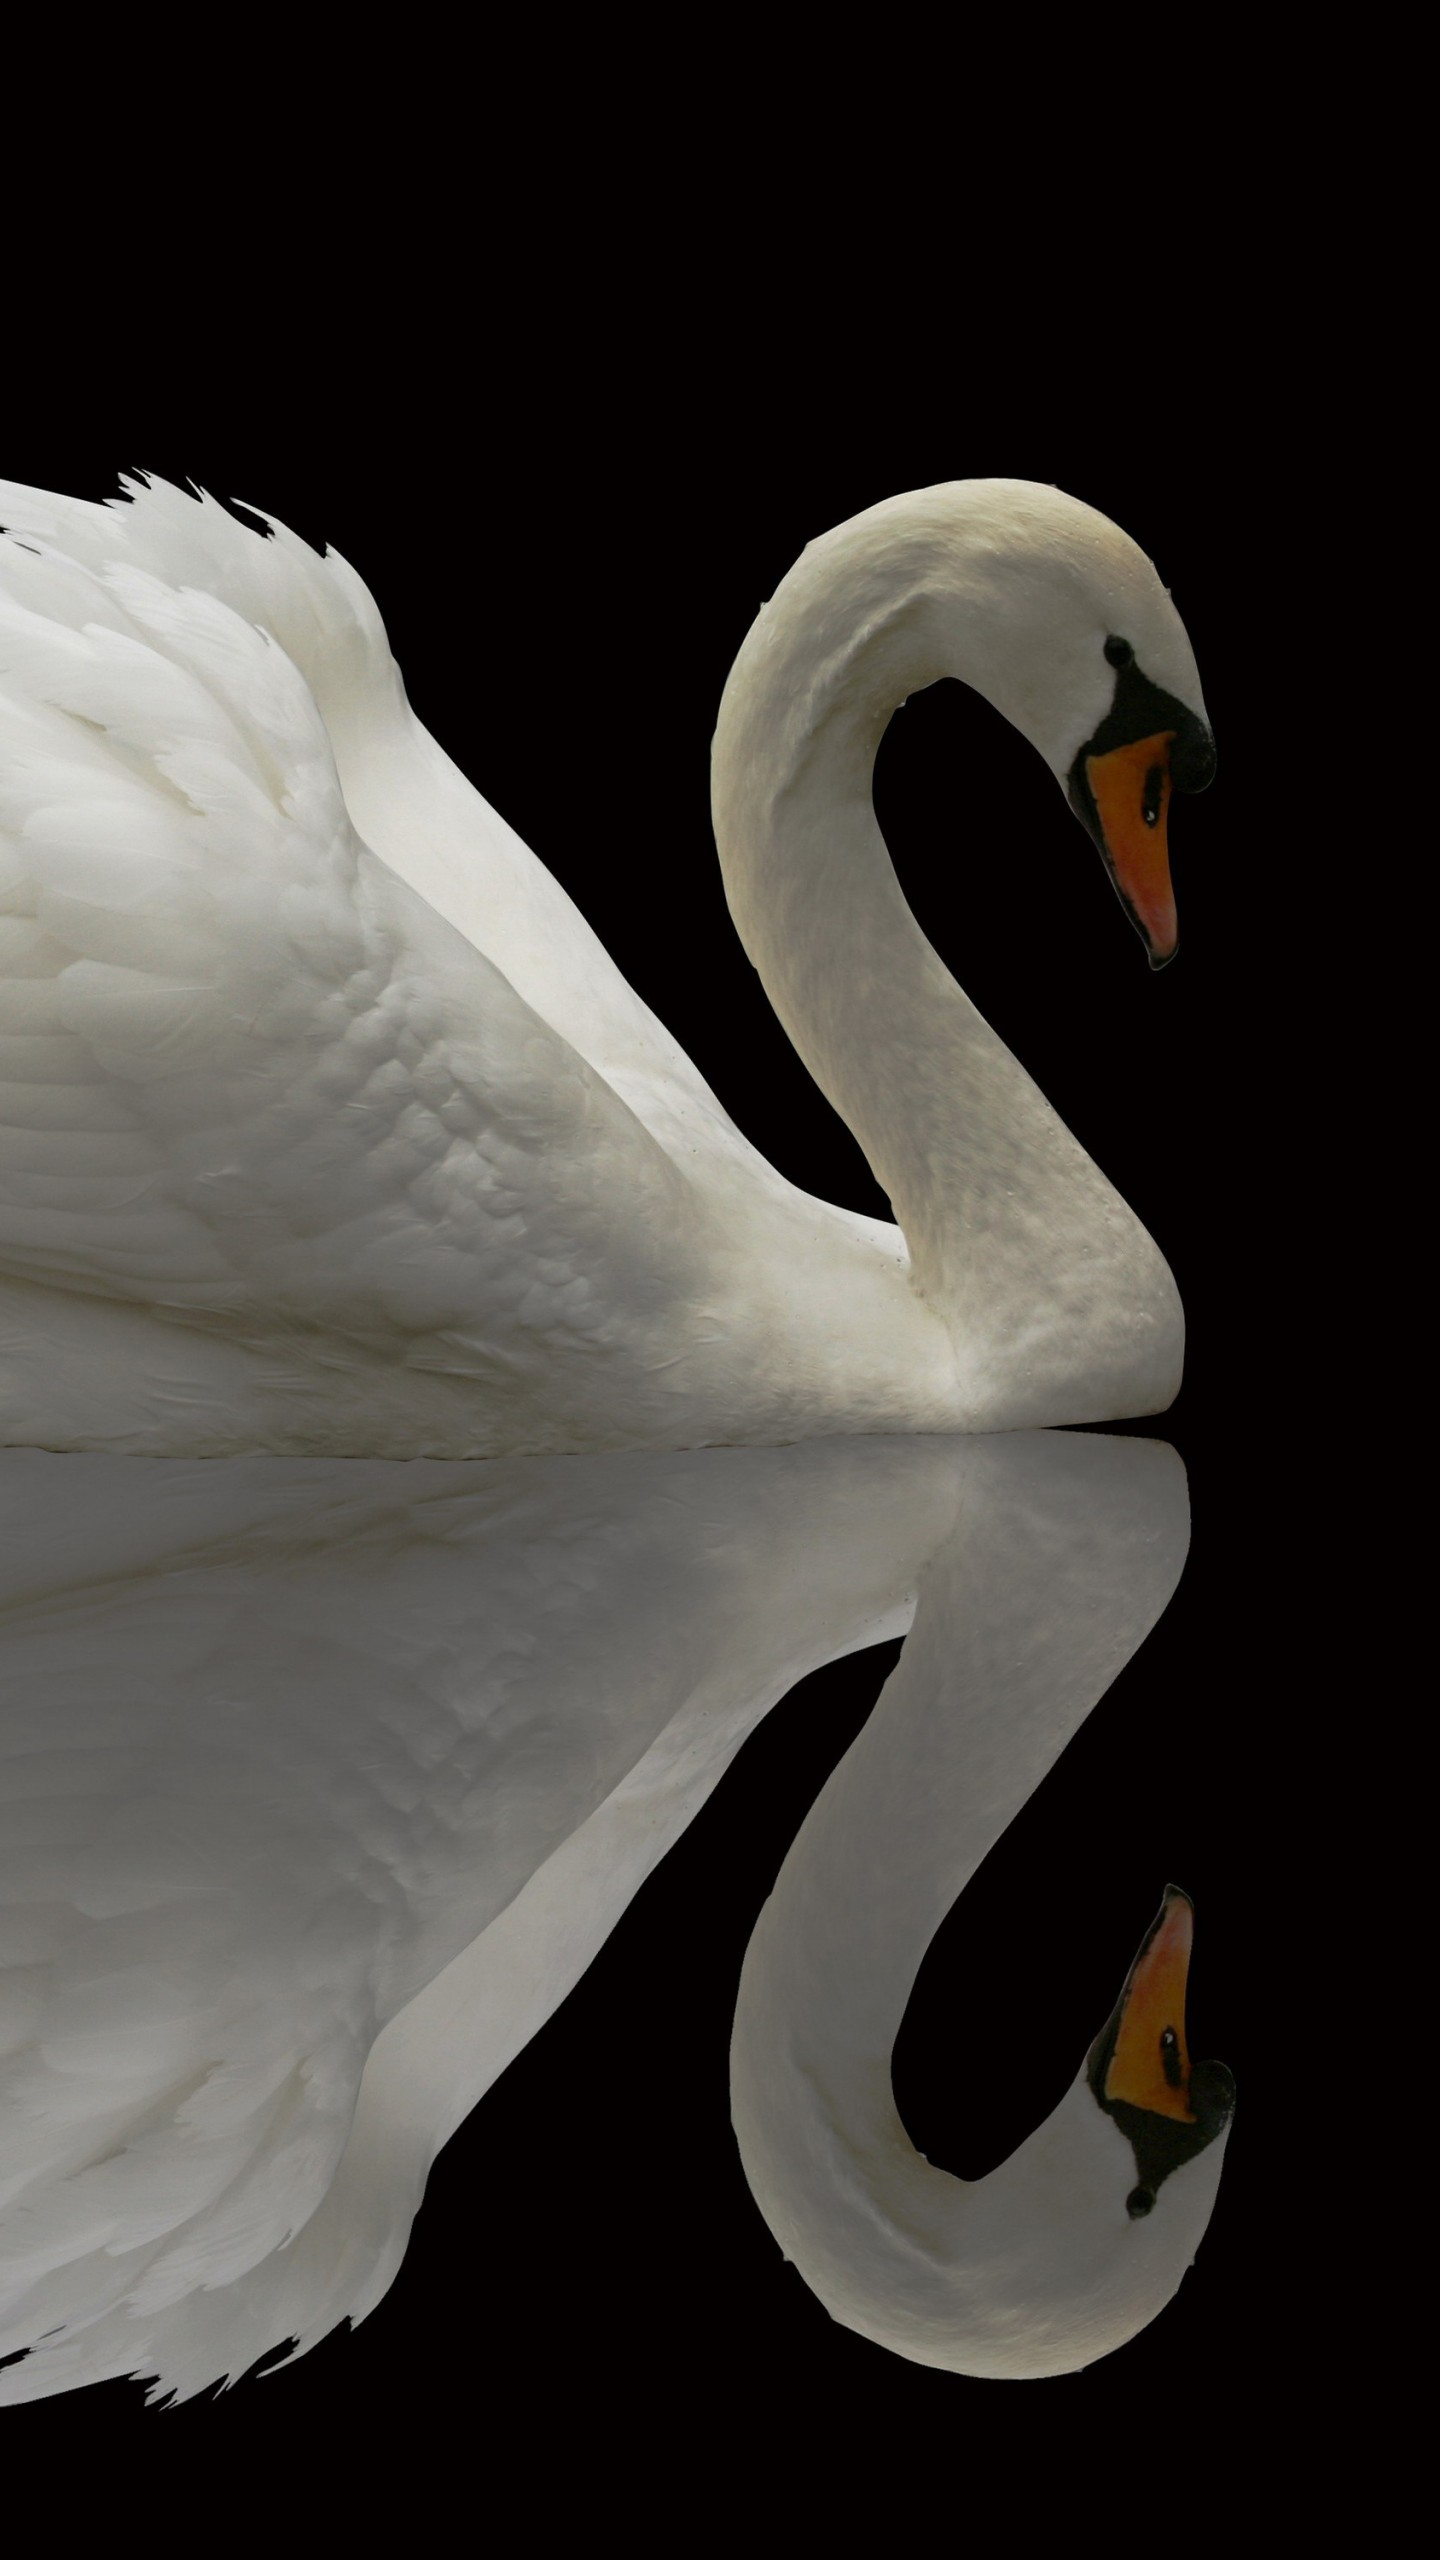 Wallpaper Swan Reflection Cute Animals Animals 4878